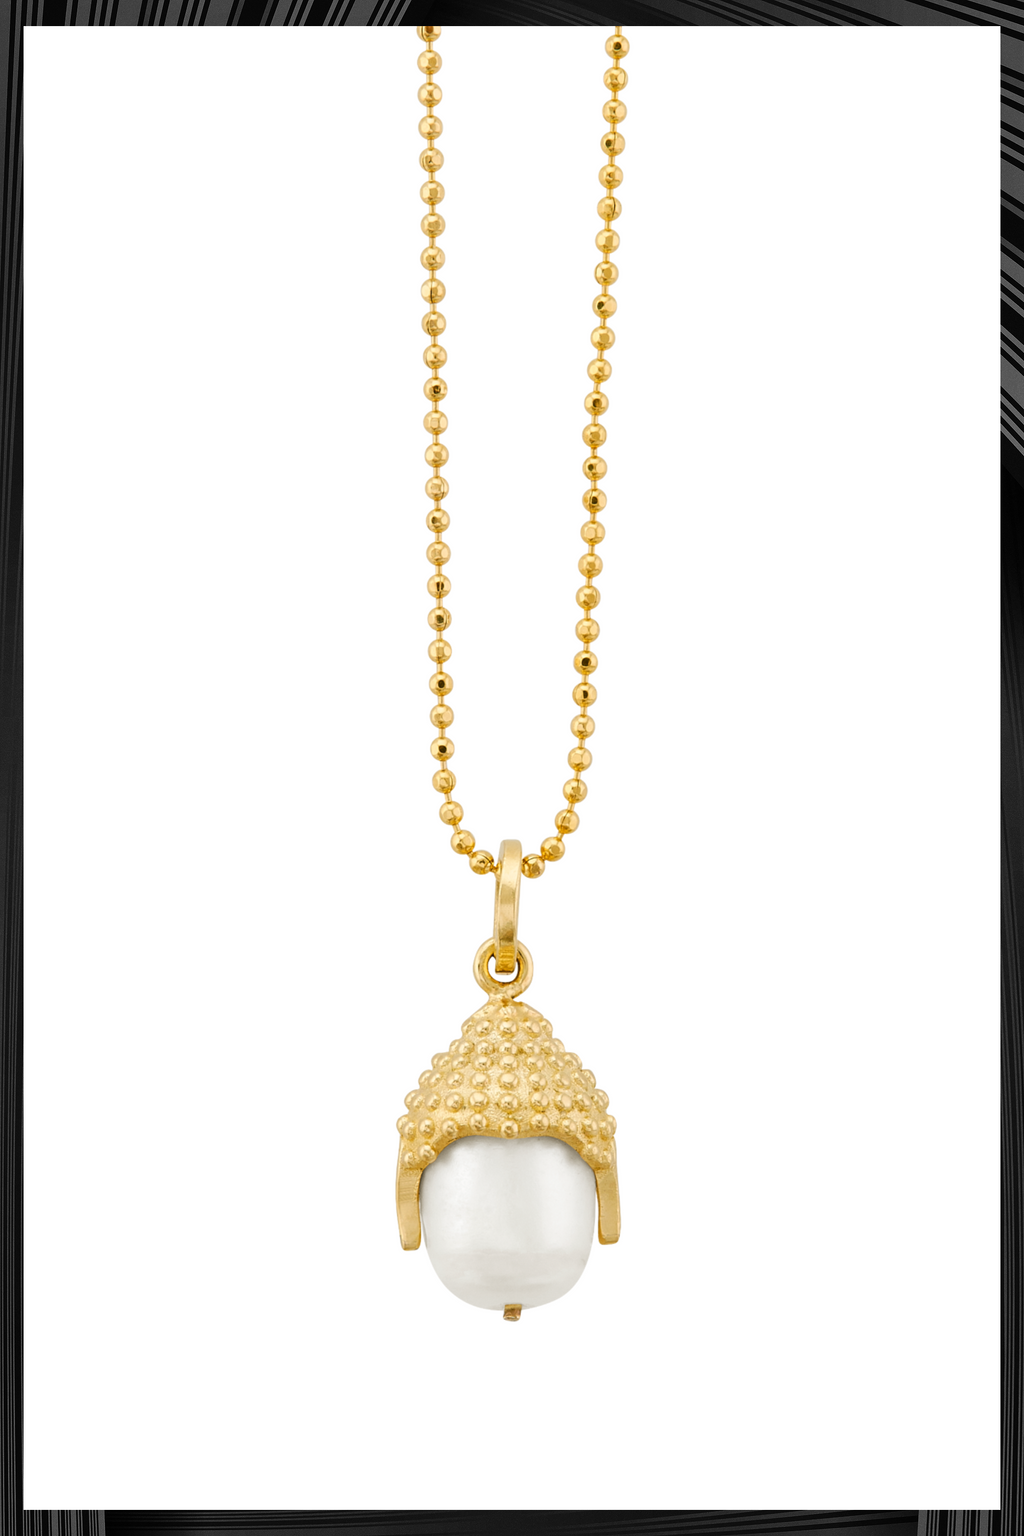 White Pearl Buddha Mind Necklace | Free Delivery - Quick Shipping